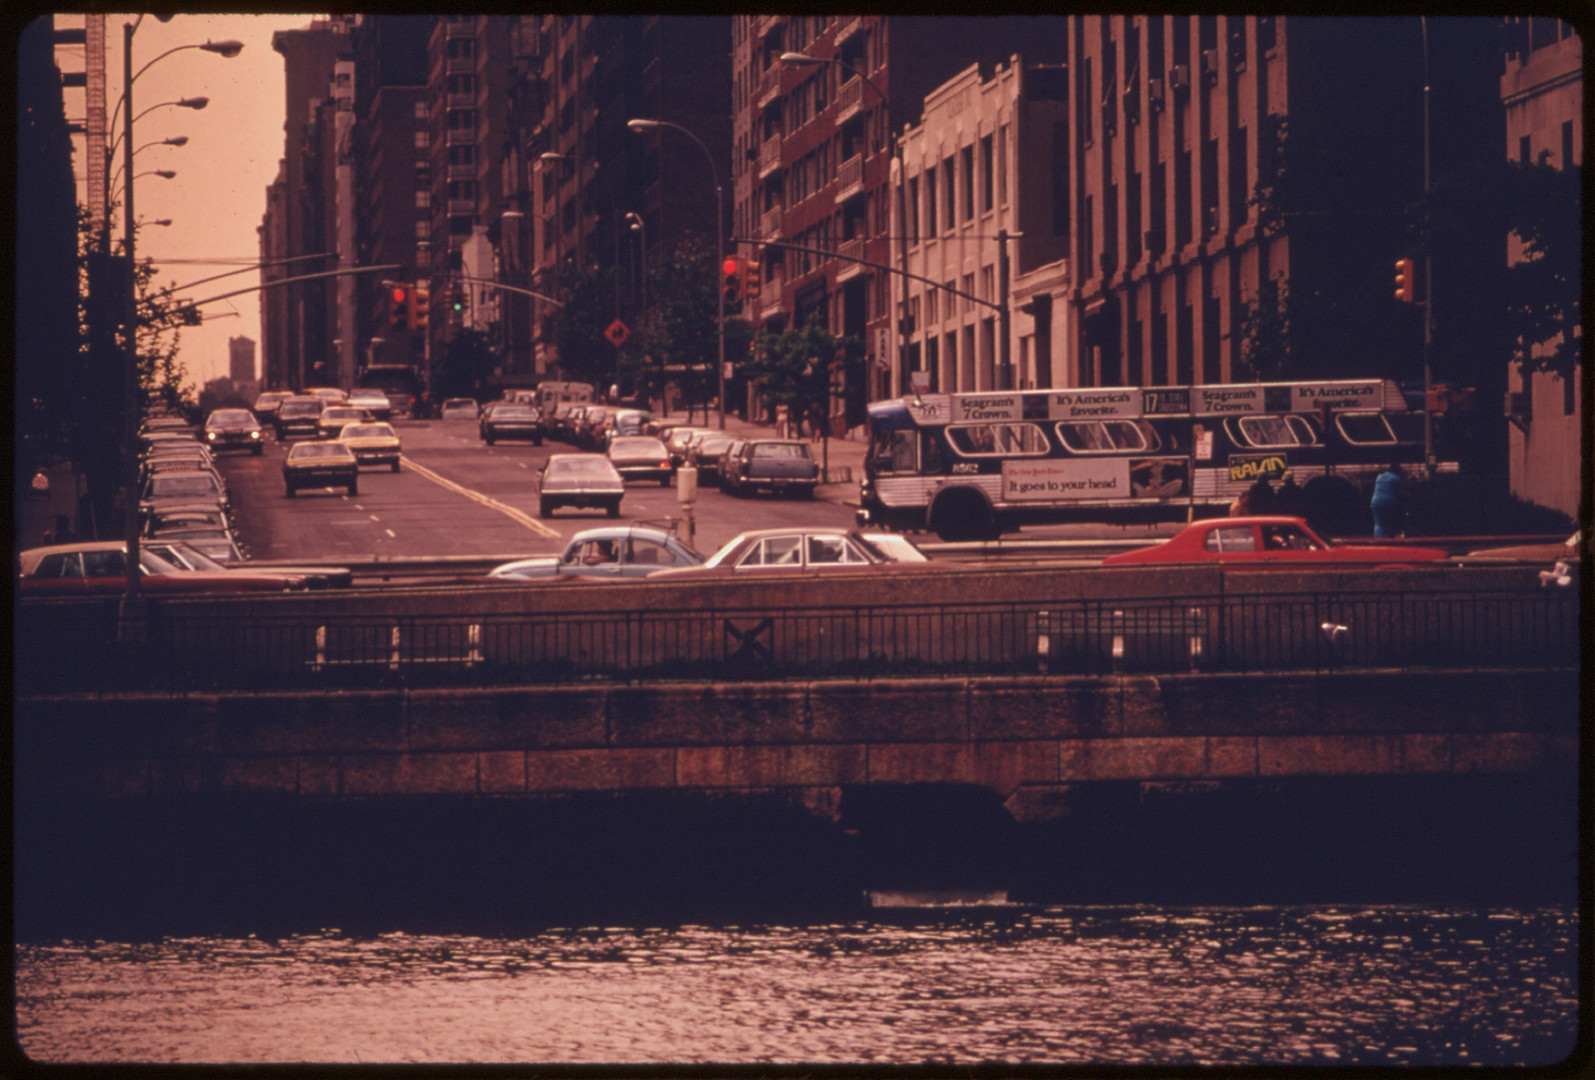 Near East River, Manhattan, 1966.